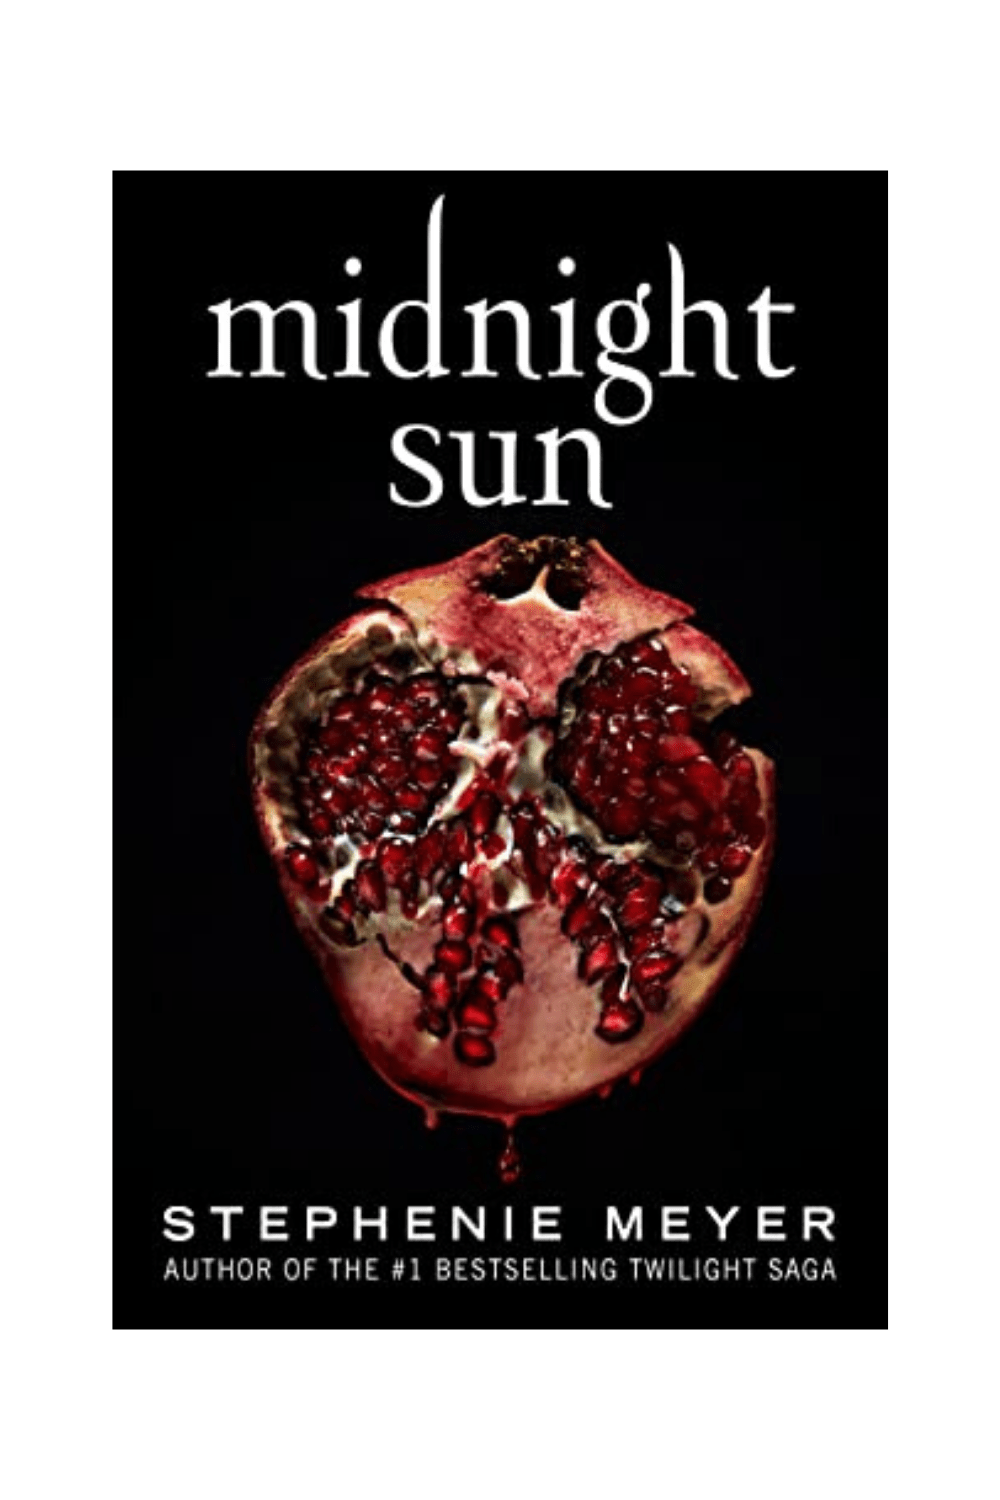 midnight-sun-book-cover.png?fit=1000,150